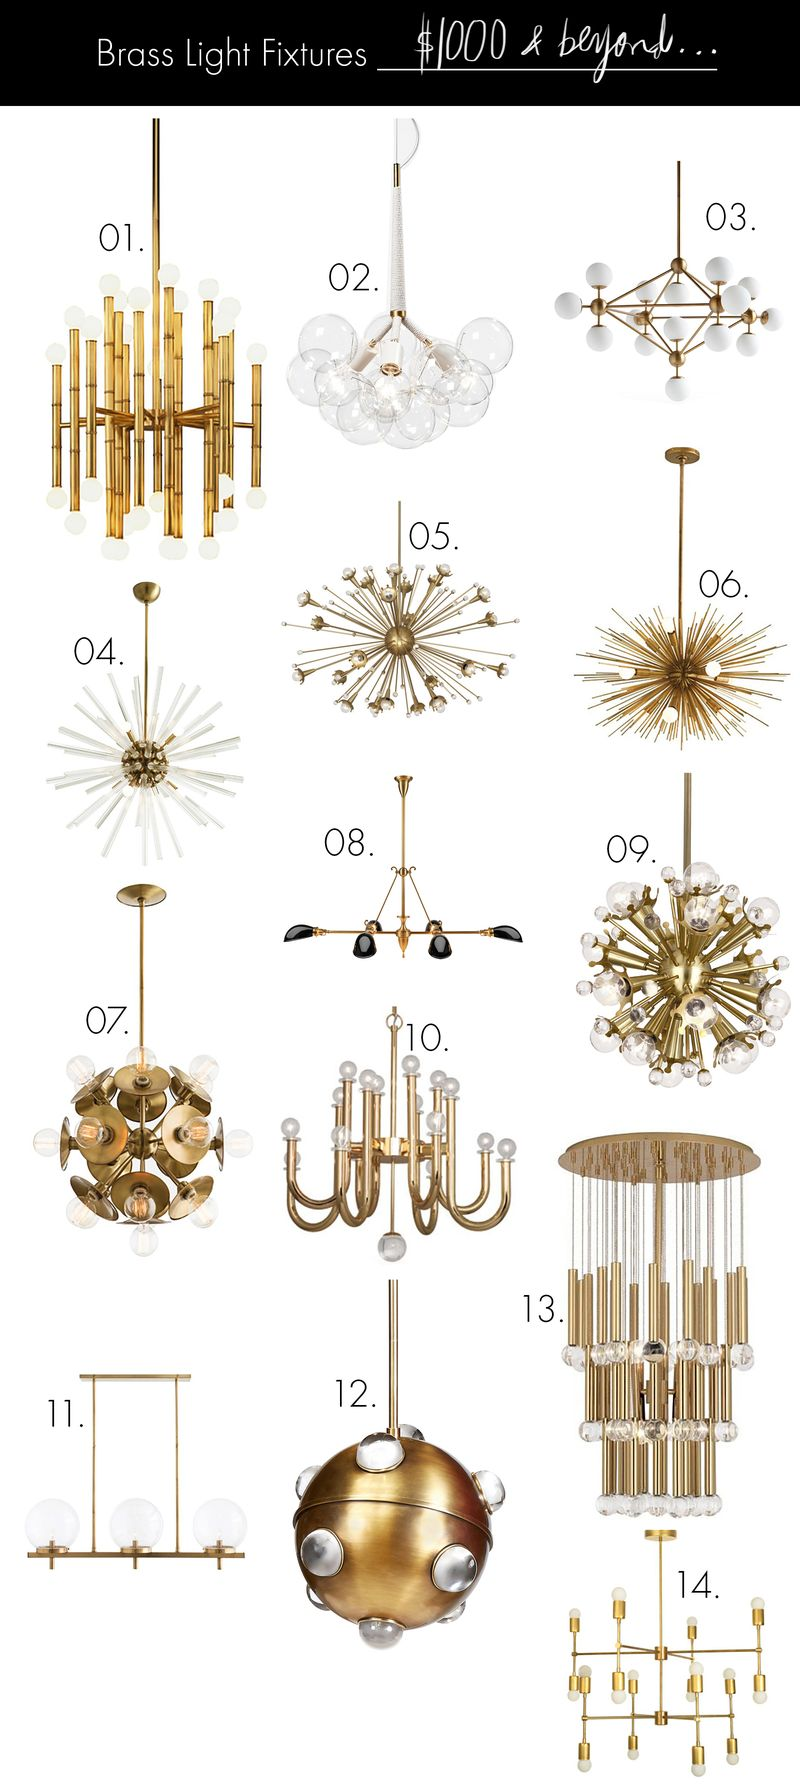 Brass light fixtures on any budget 1000 and beyond